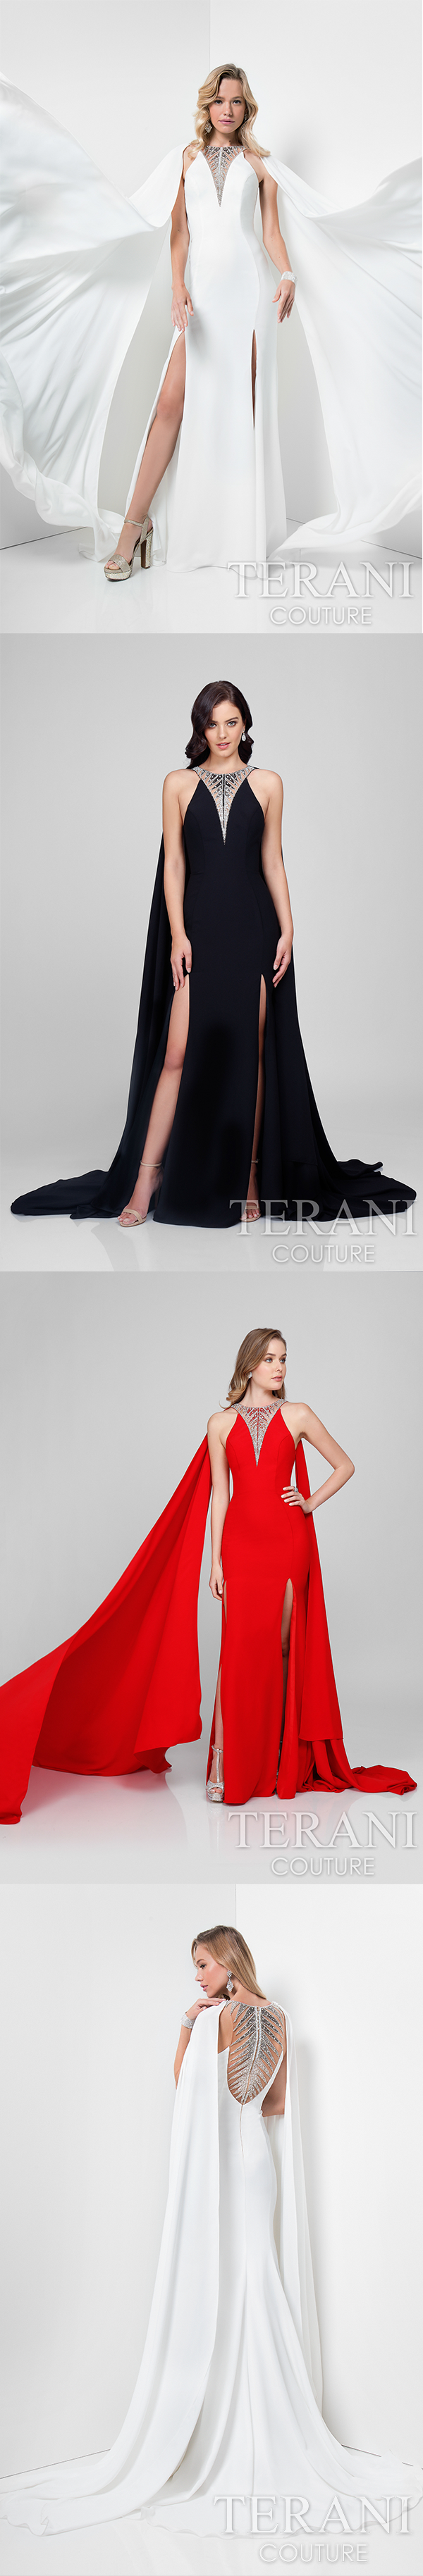 Alluring caped designer dress in crepe back satin featuring ombré